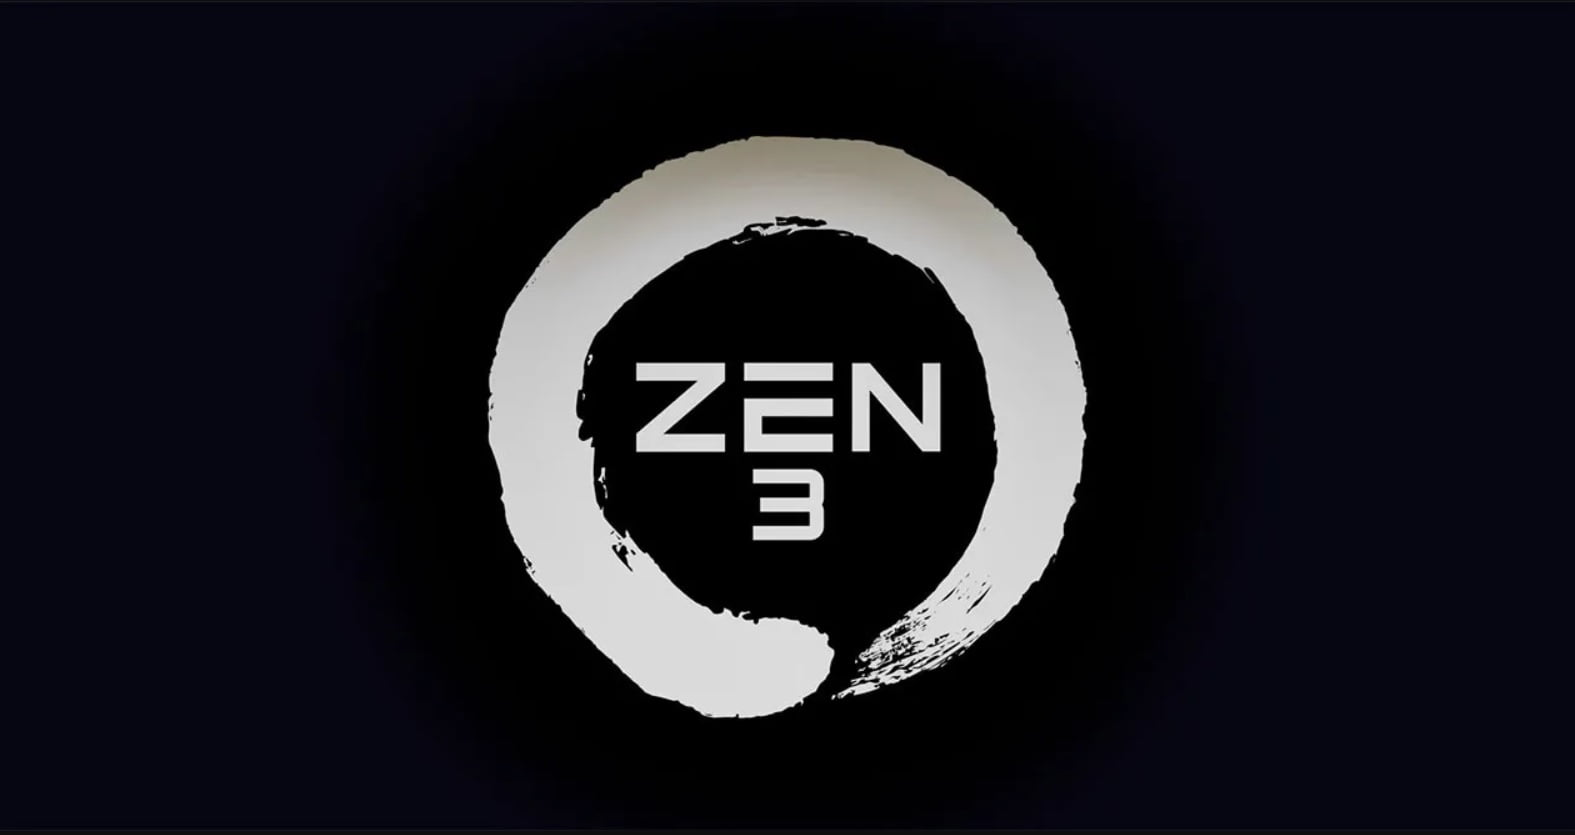 AMD Zen 3 architecture will make its debut in the upcoming months